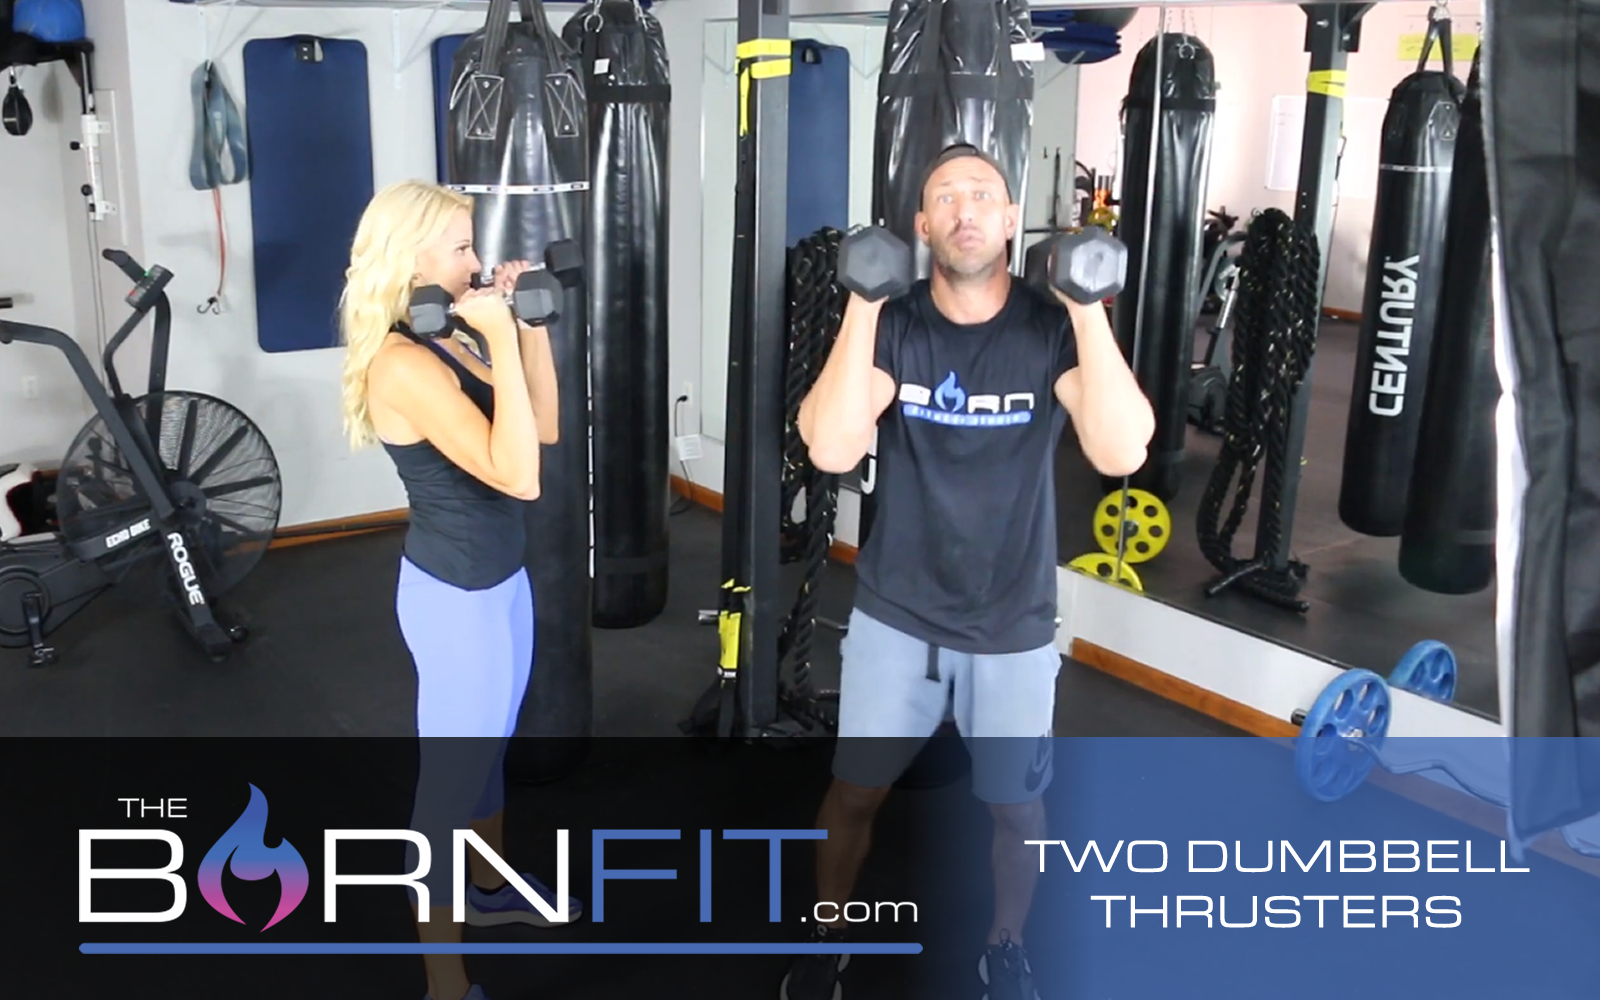 two dumbbell thrusters workout